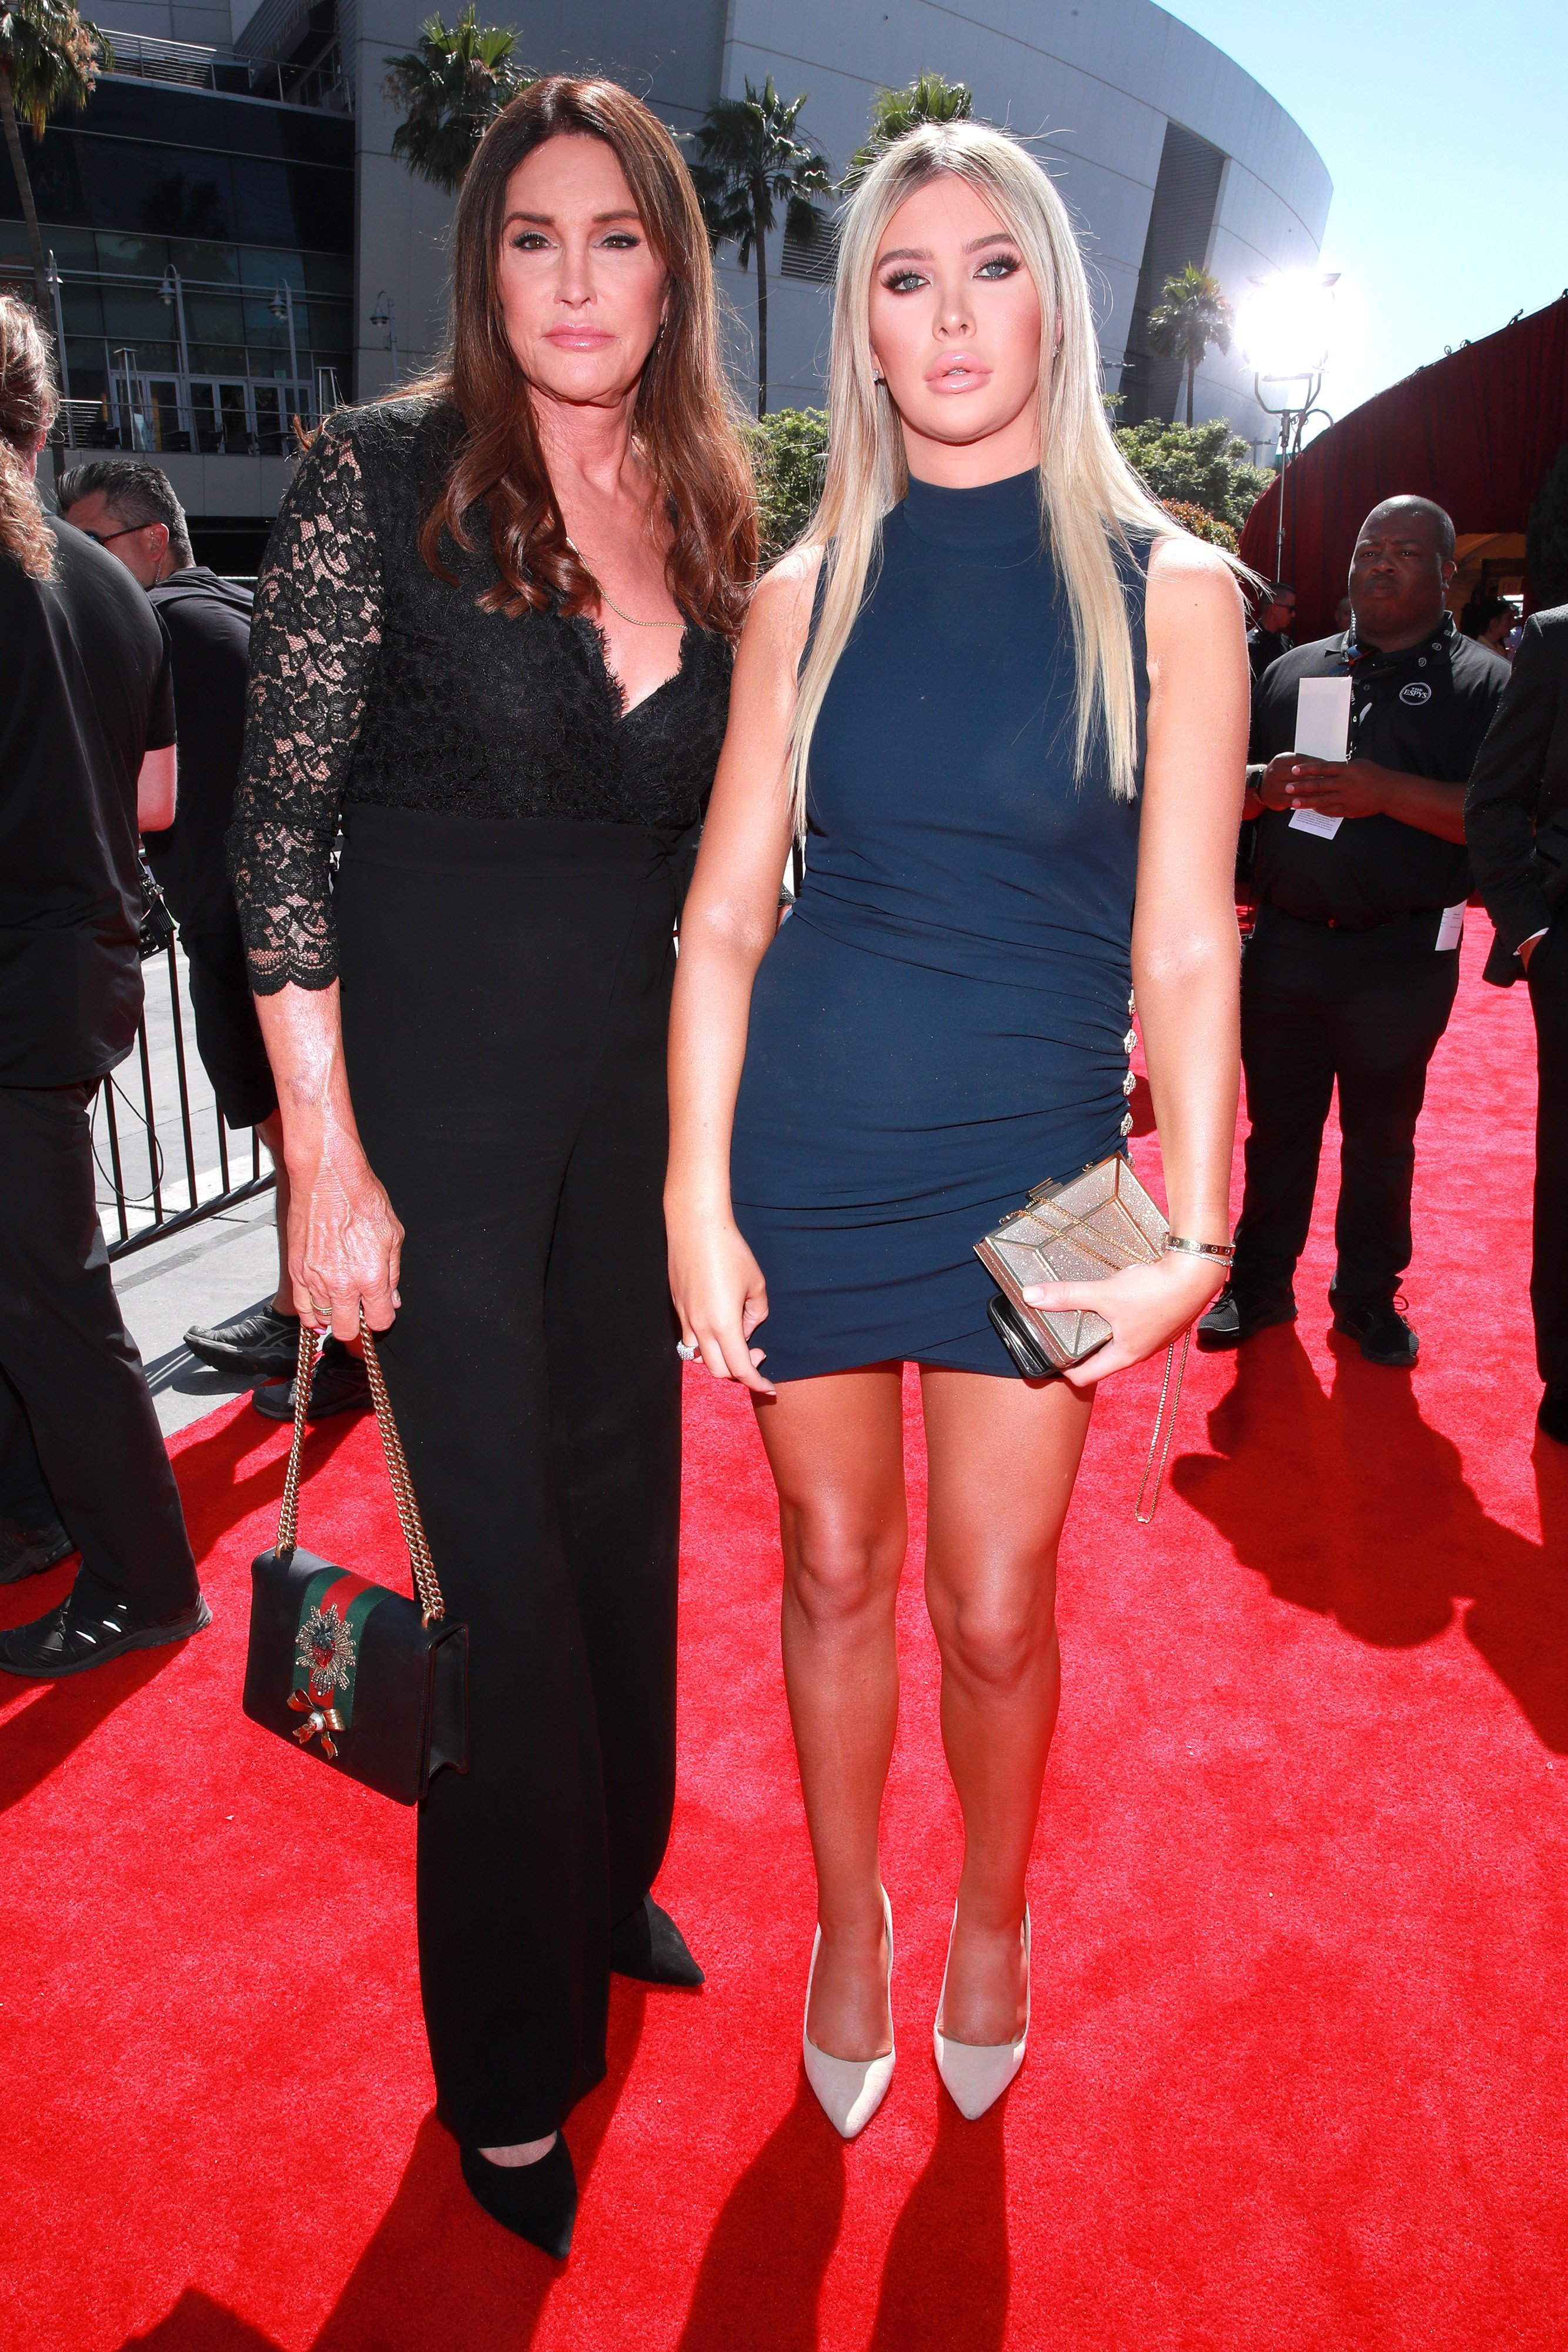 Caitlyn Jenner et Sophia Hutchins assistent aux ESPY Awards annuels | Photo: Getty Images